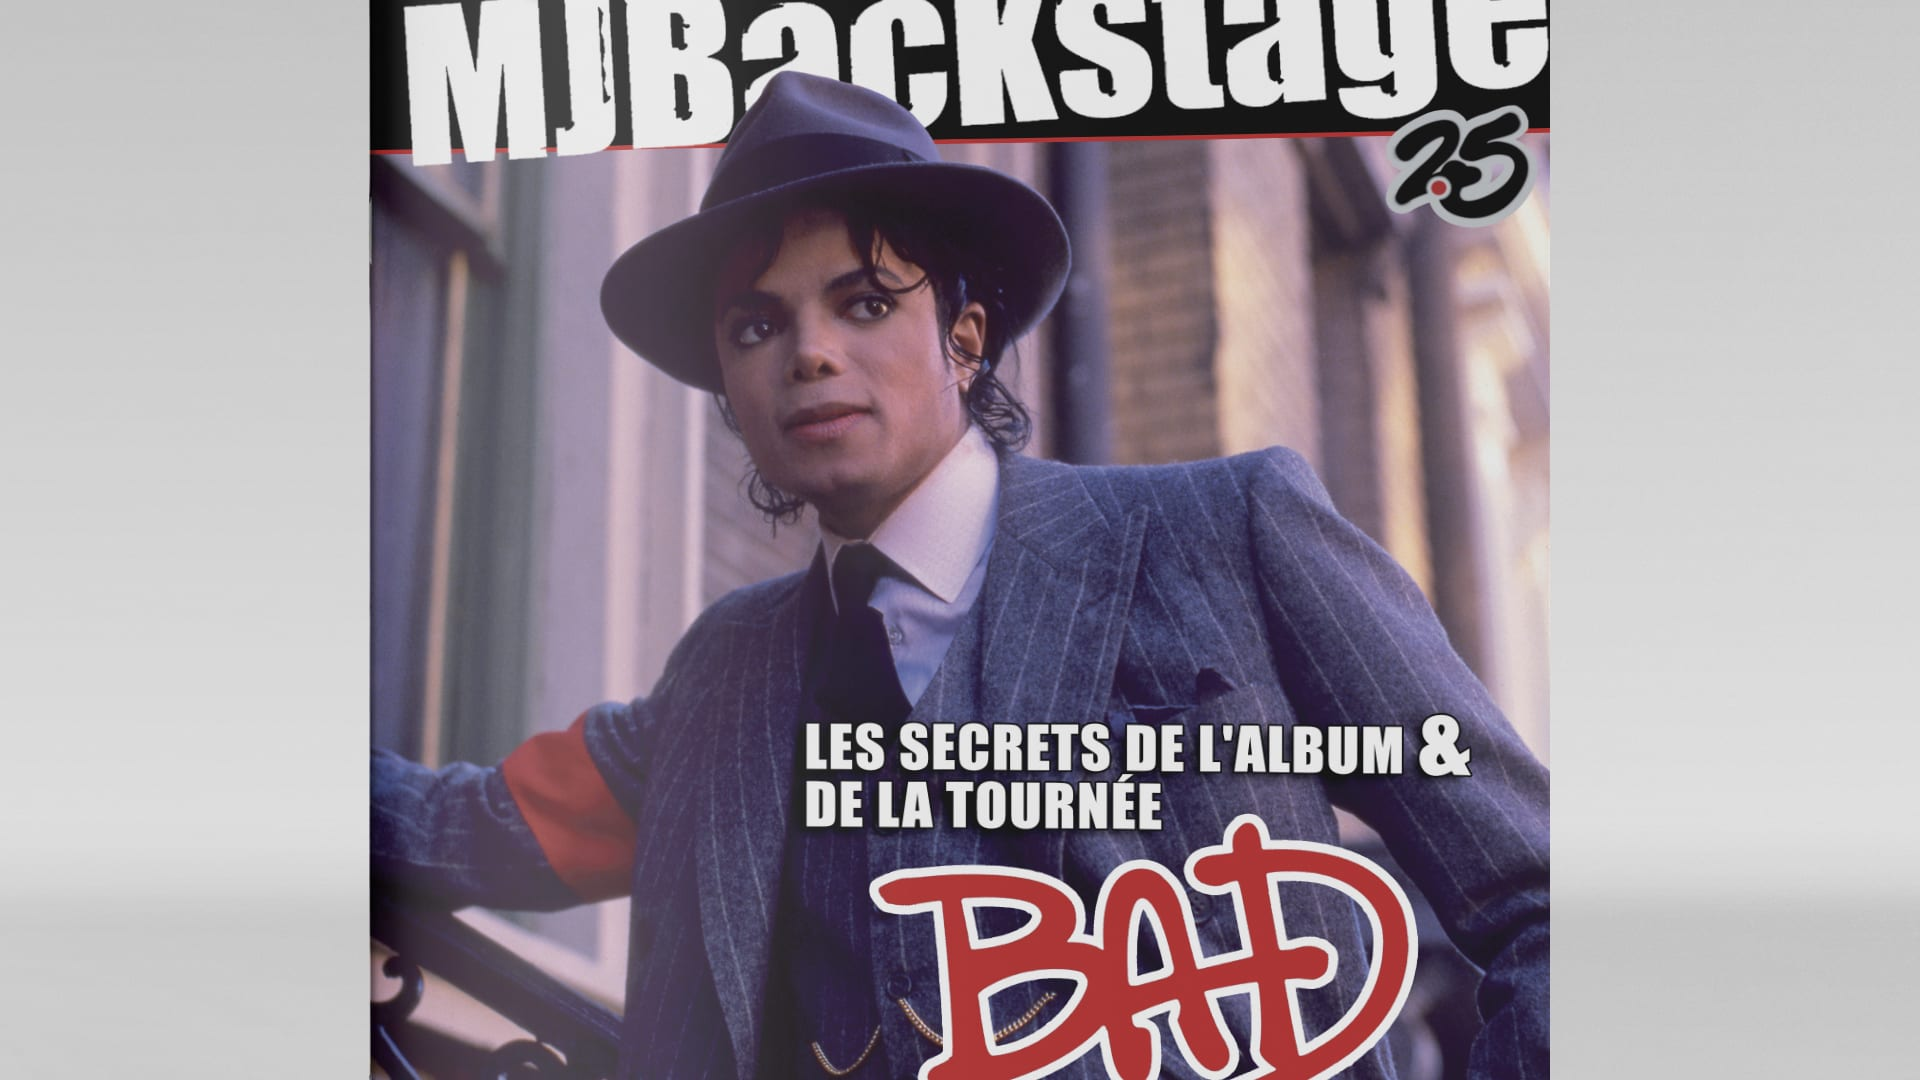 MJ Backstage 25